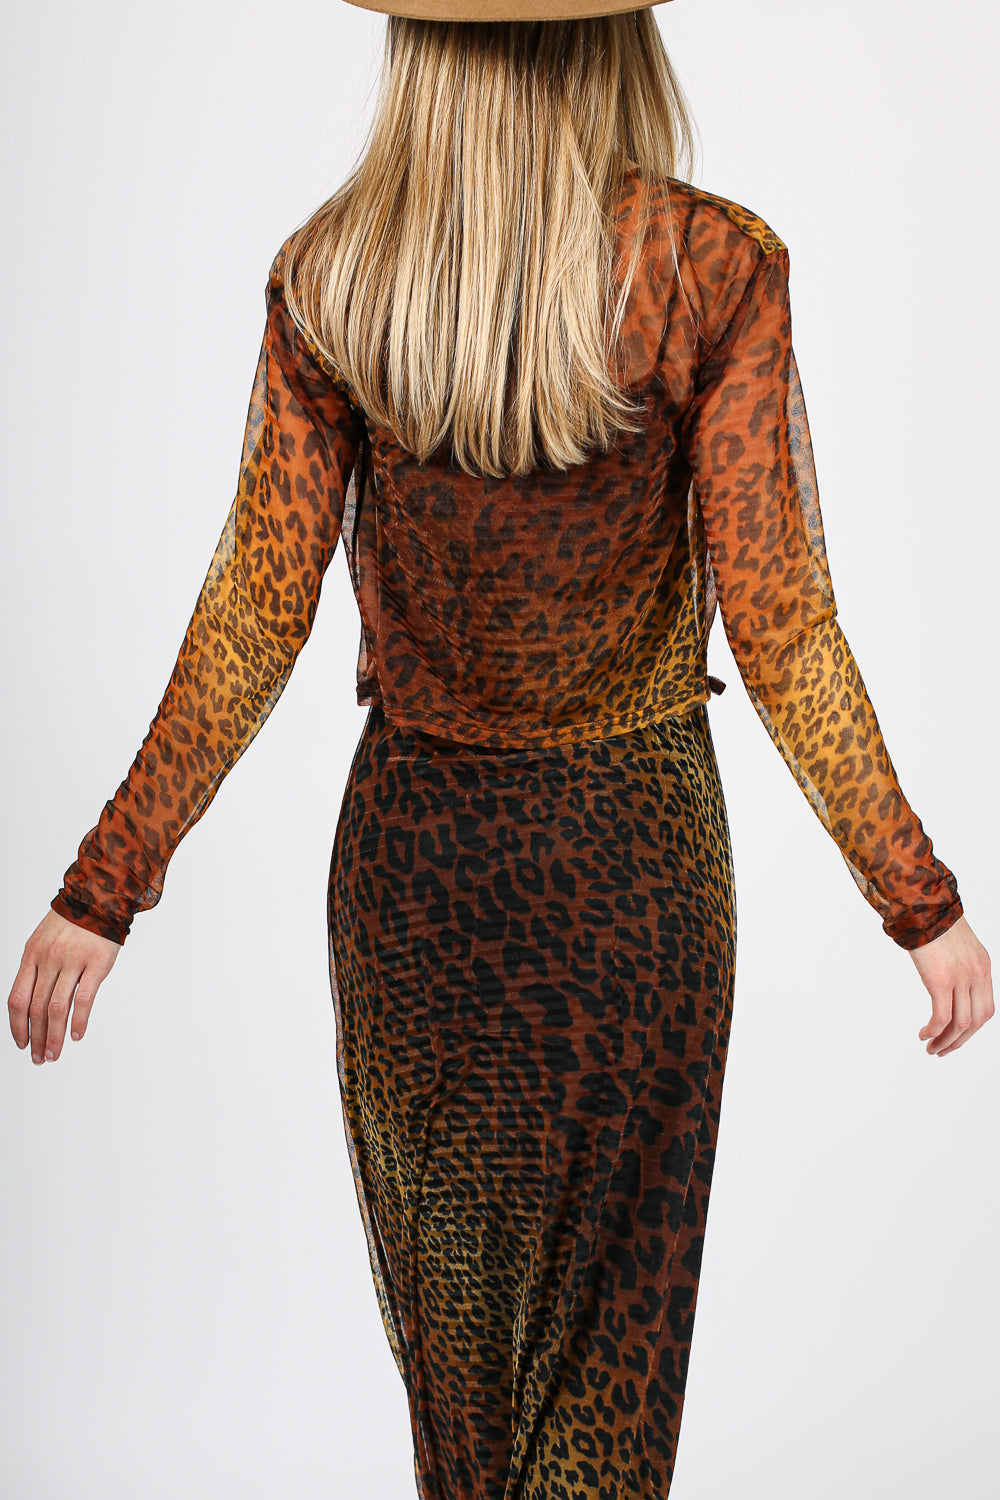 Vintage Cheetah Dress Tie Top Set